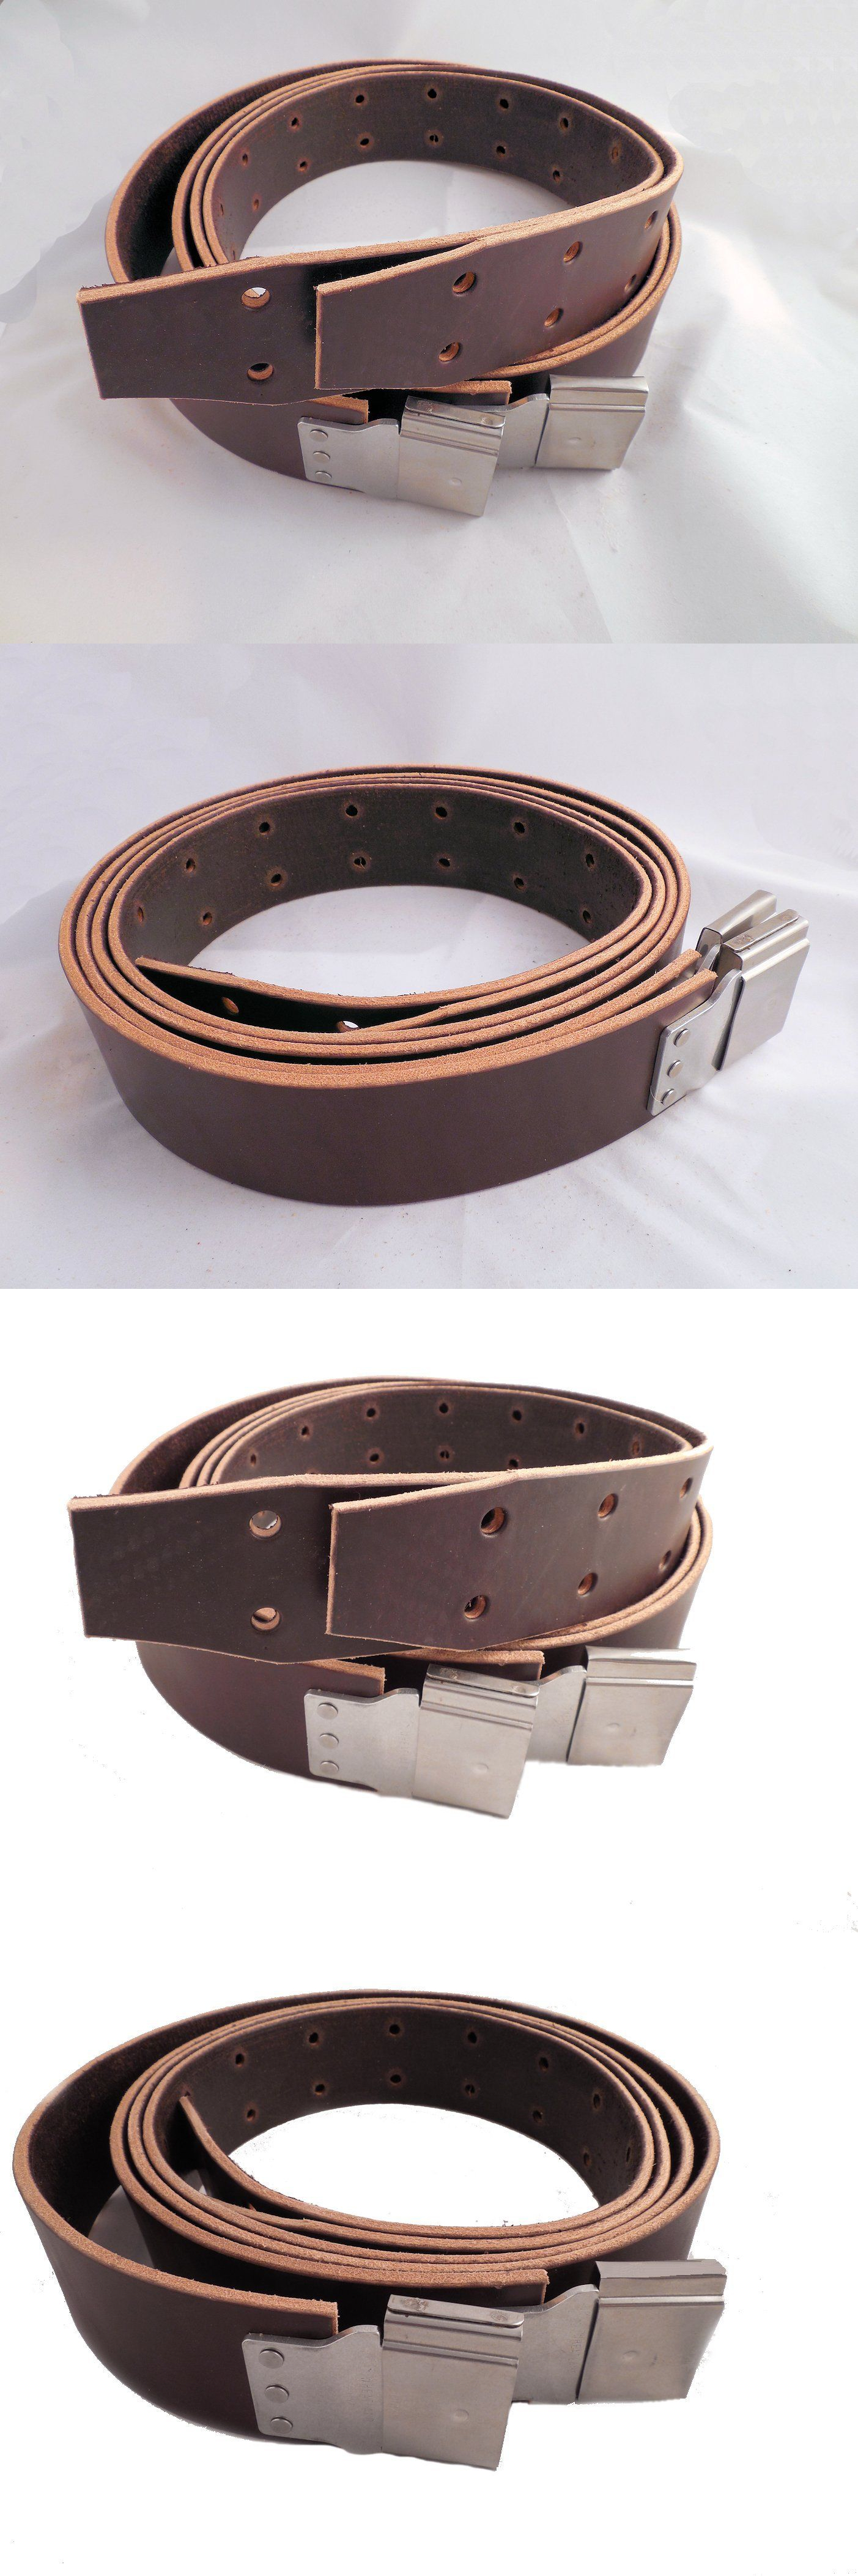 Other Western Tack 47301: Amish Made Genuine Usa Leather Western Stirrup Straps W/ Buckles-Brown 2 1/2 BUY IT NOW ONLY: $72.95